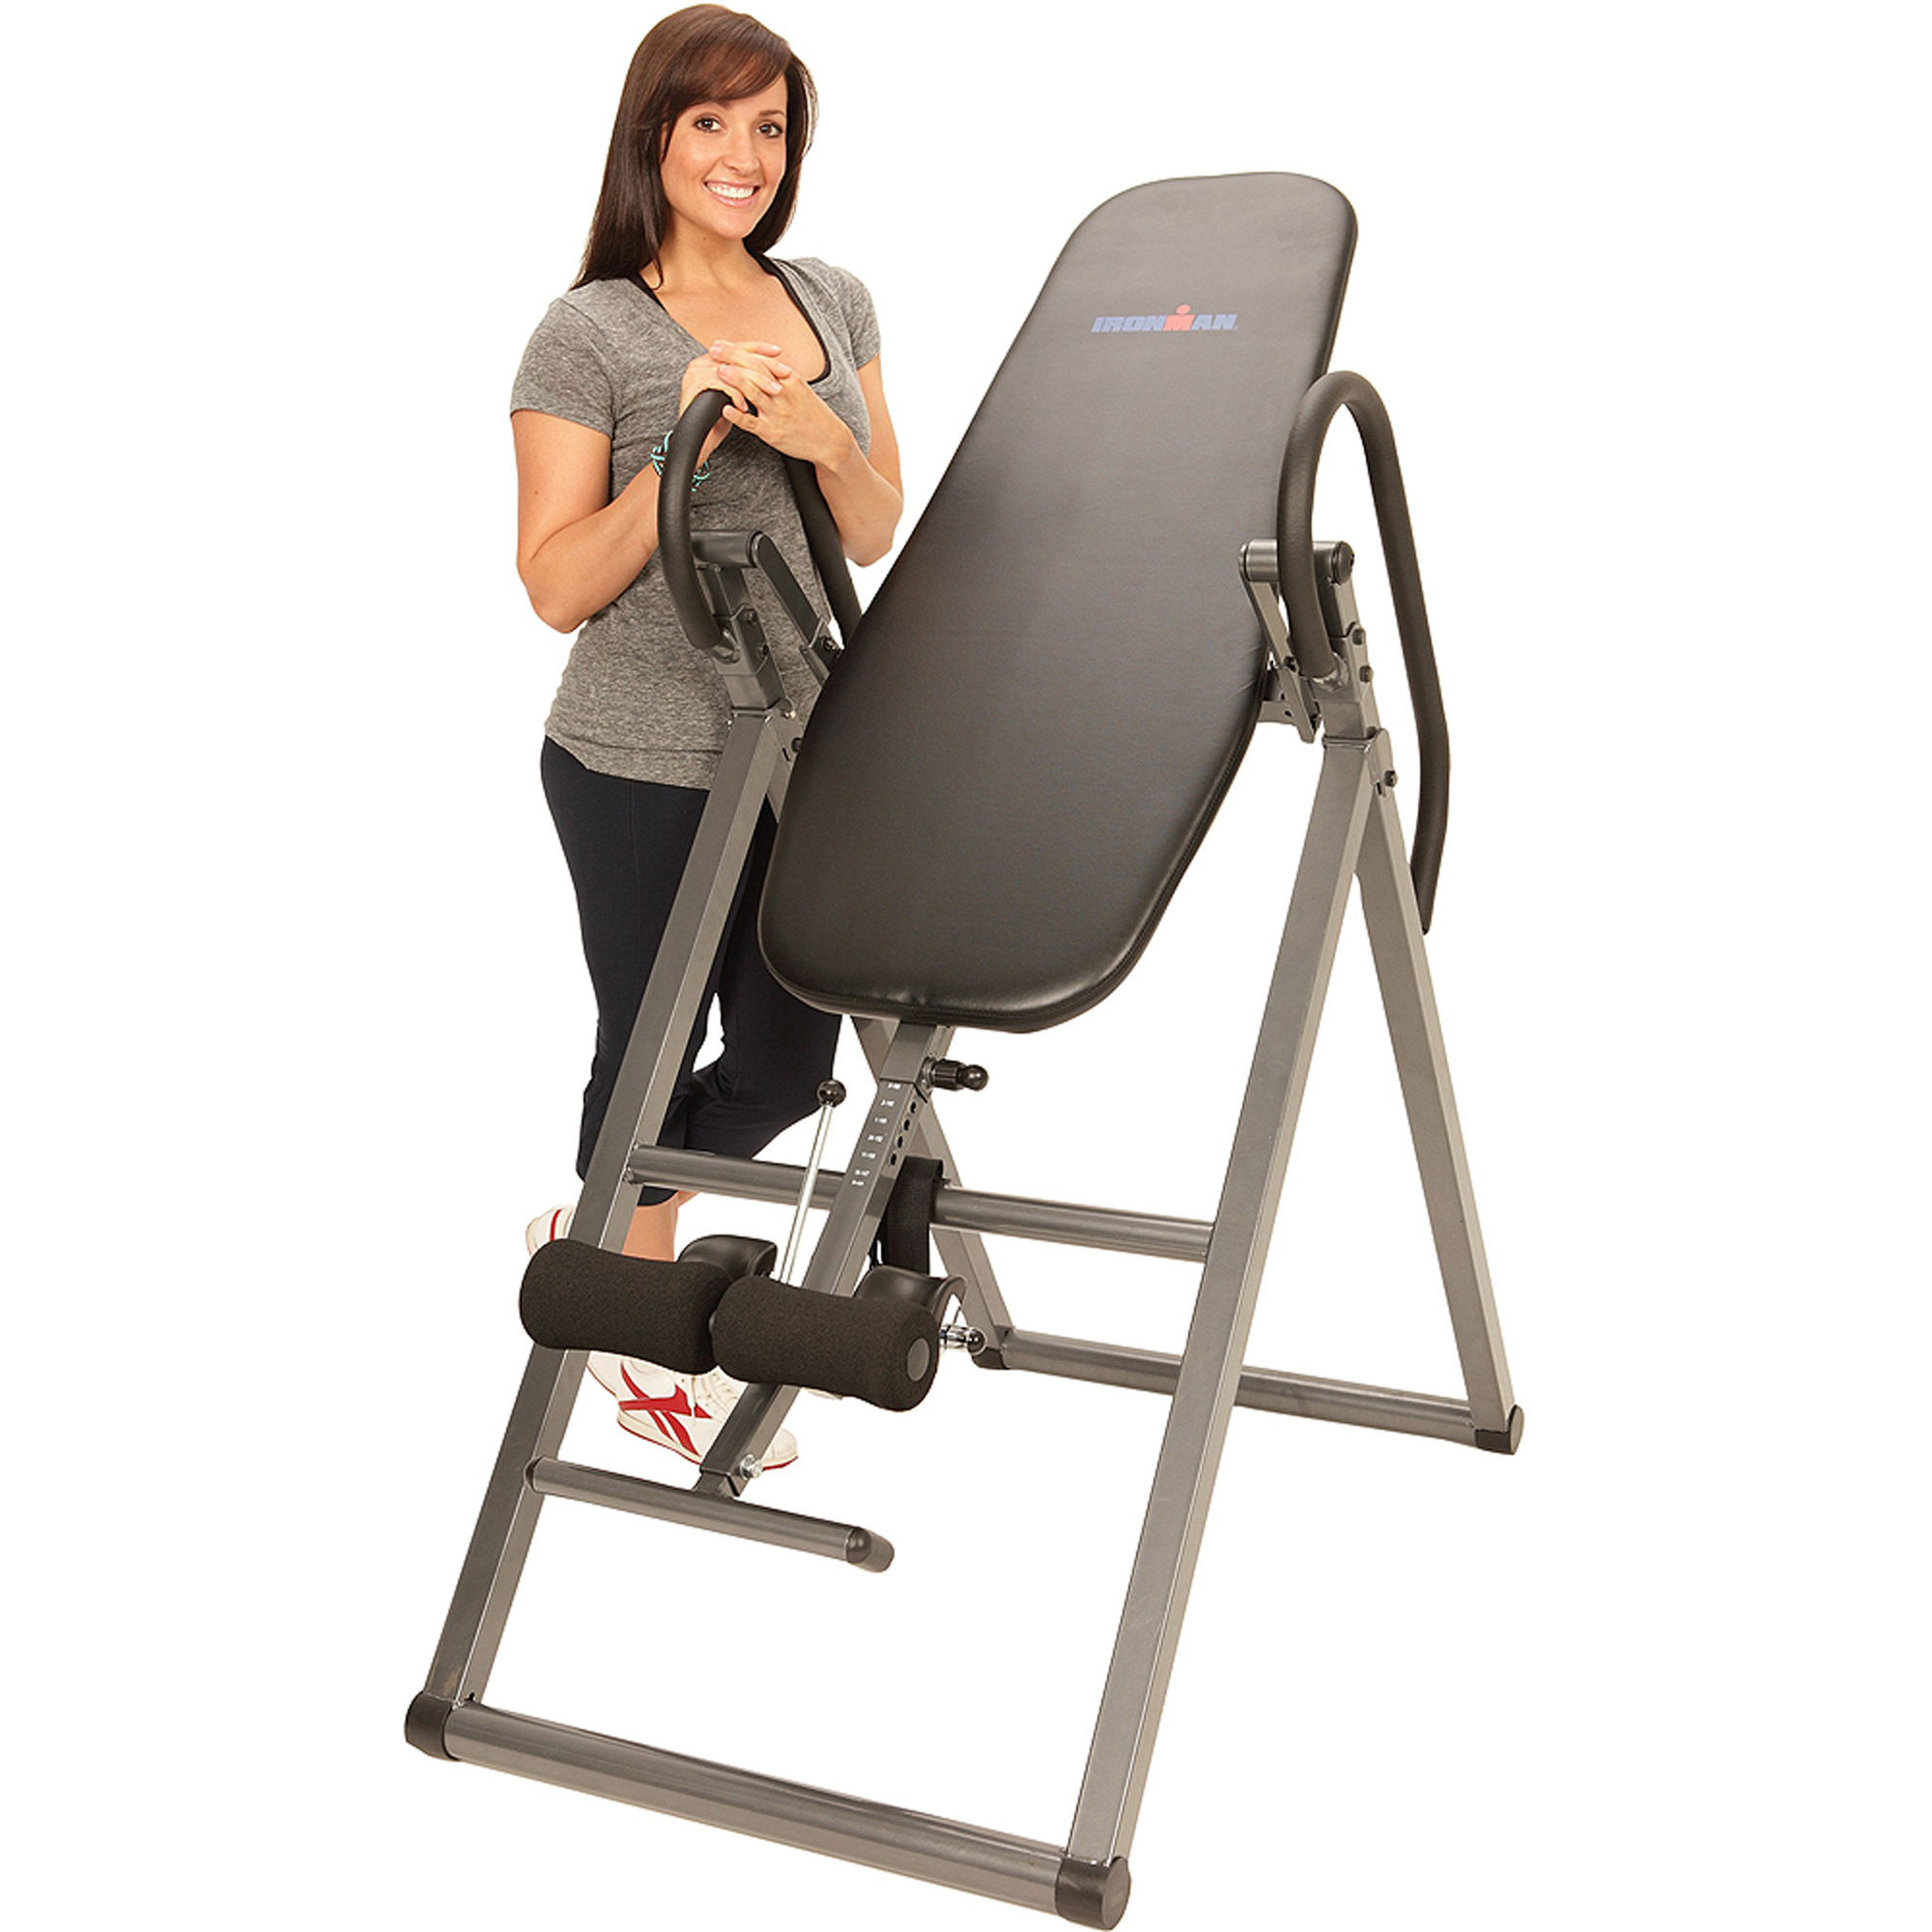 Ironman Gravity 750 Inversion Table